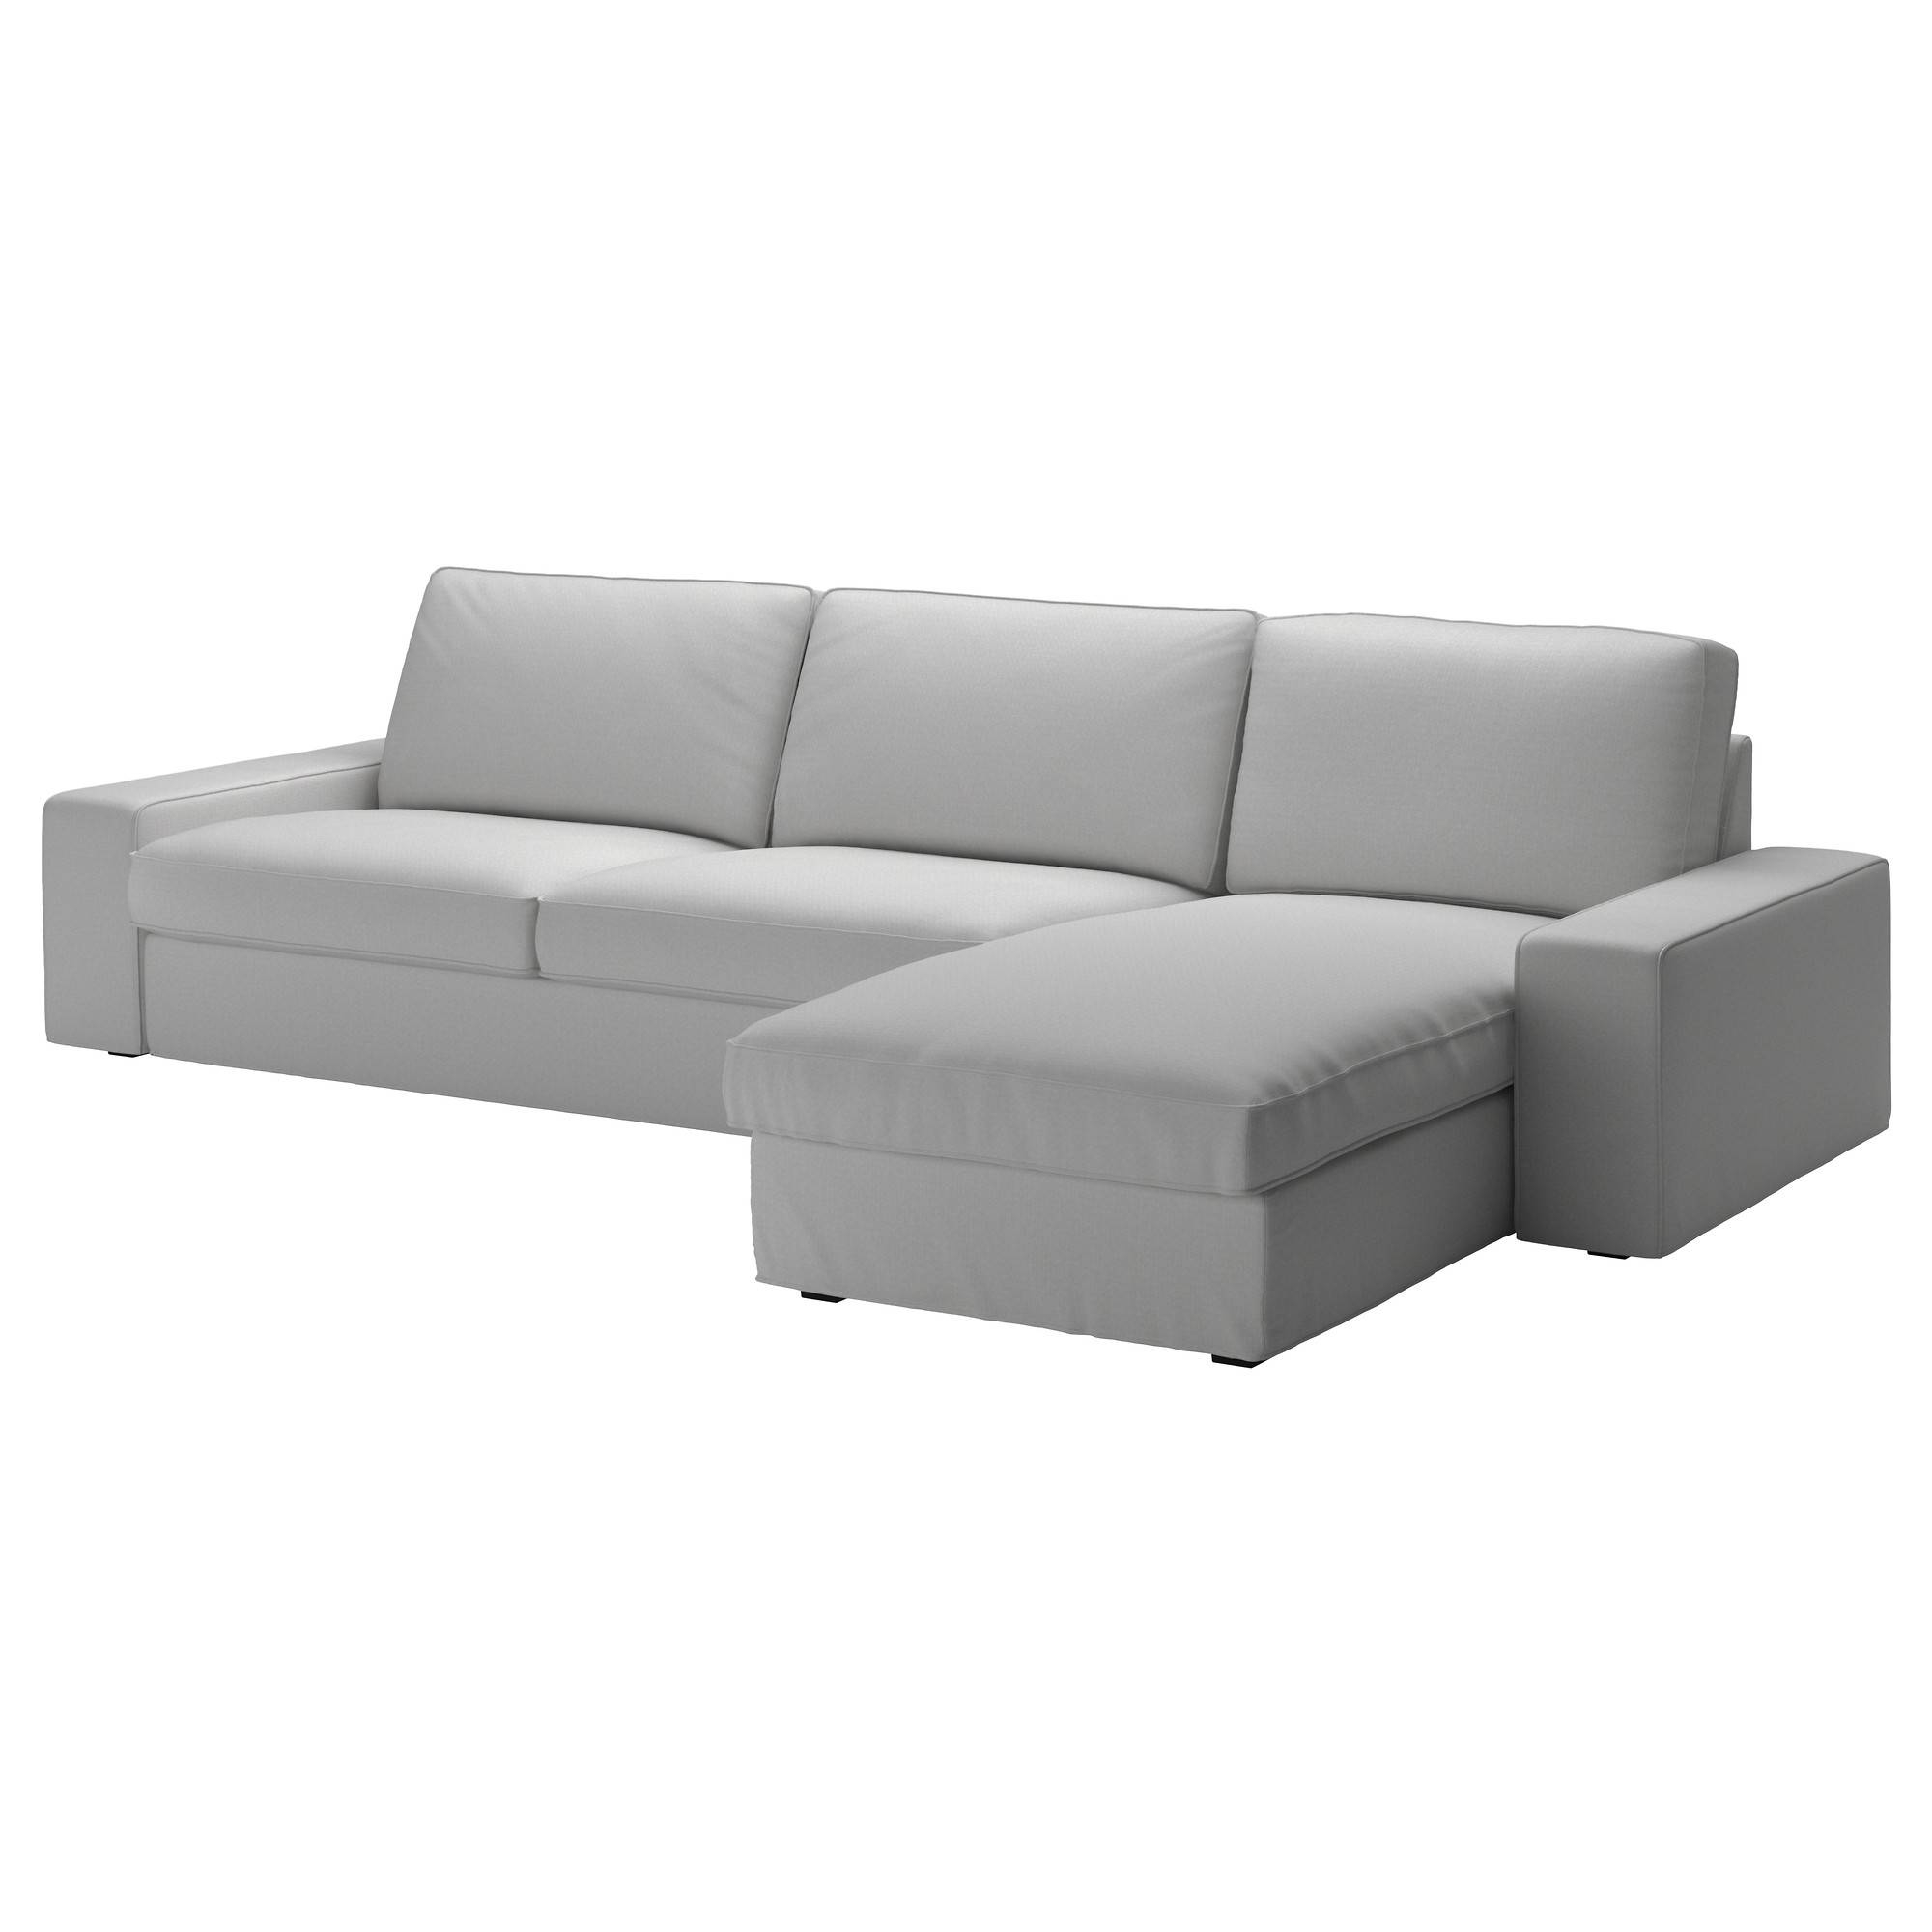 Kivik Sectional, 4-Seat - Orrsta Light Gray - Ikea in 4 Seater Couch (Image 26 of 30)